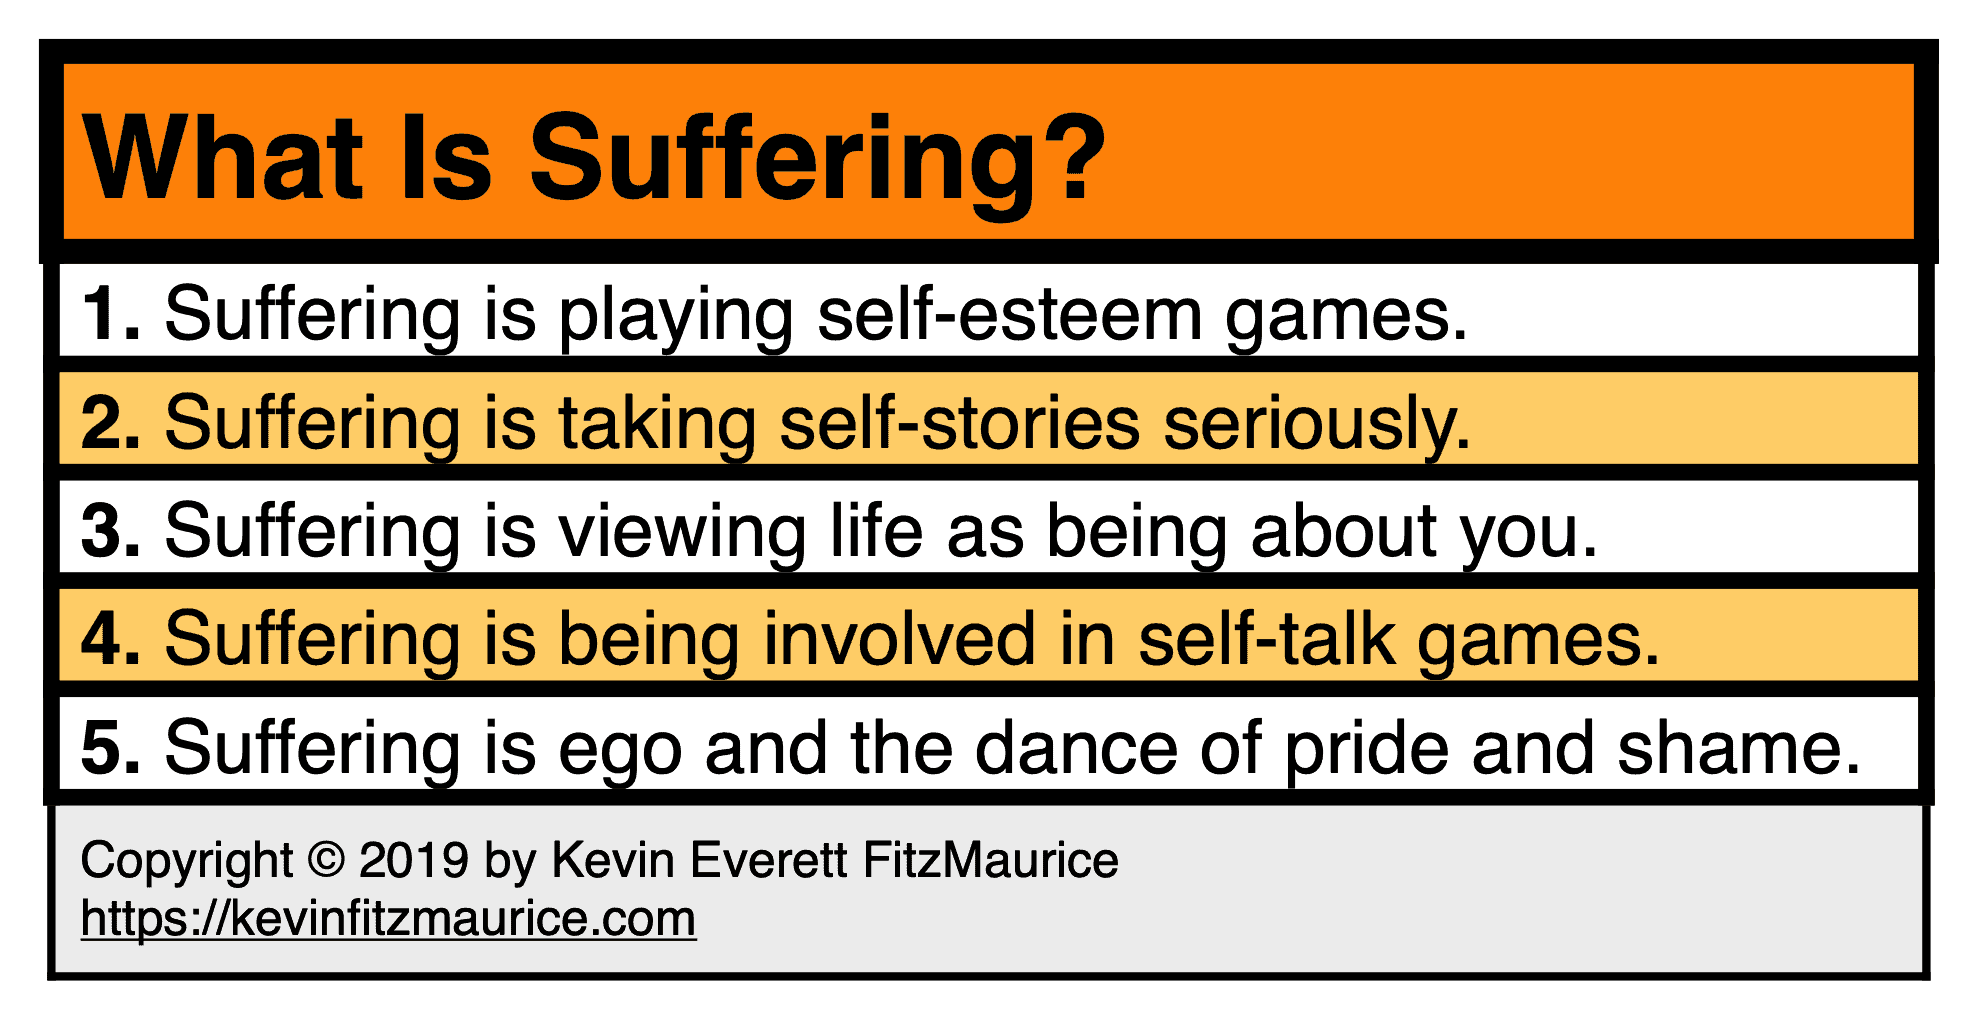 What is suffering?